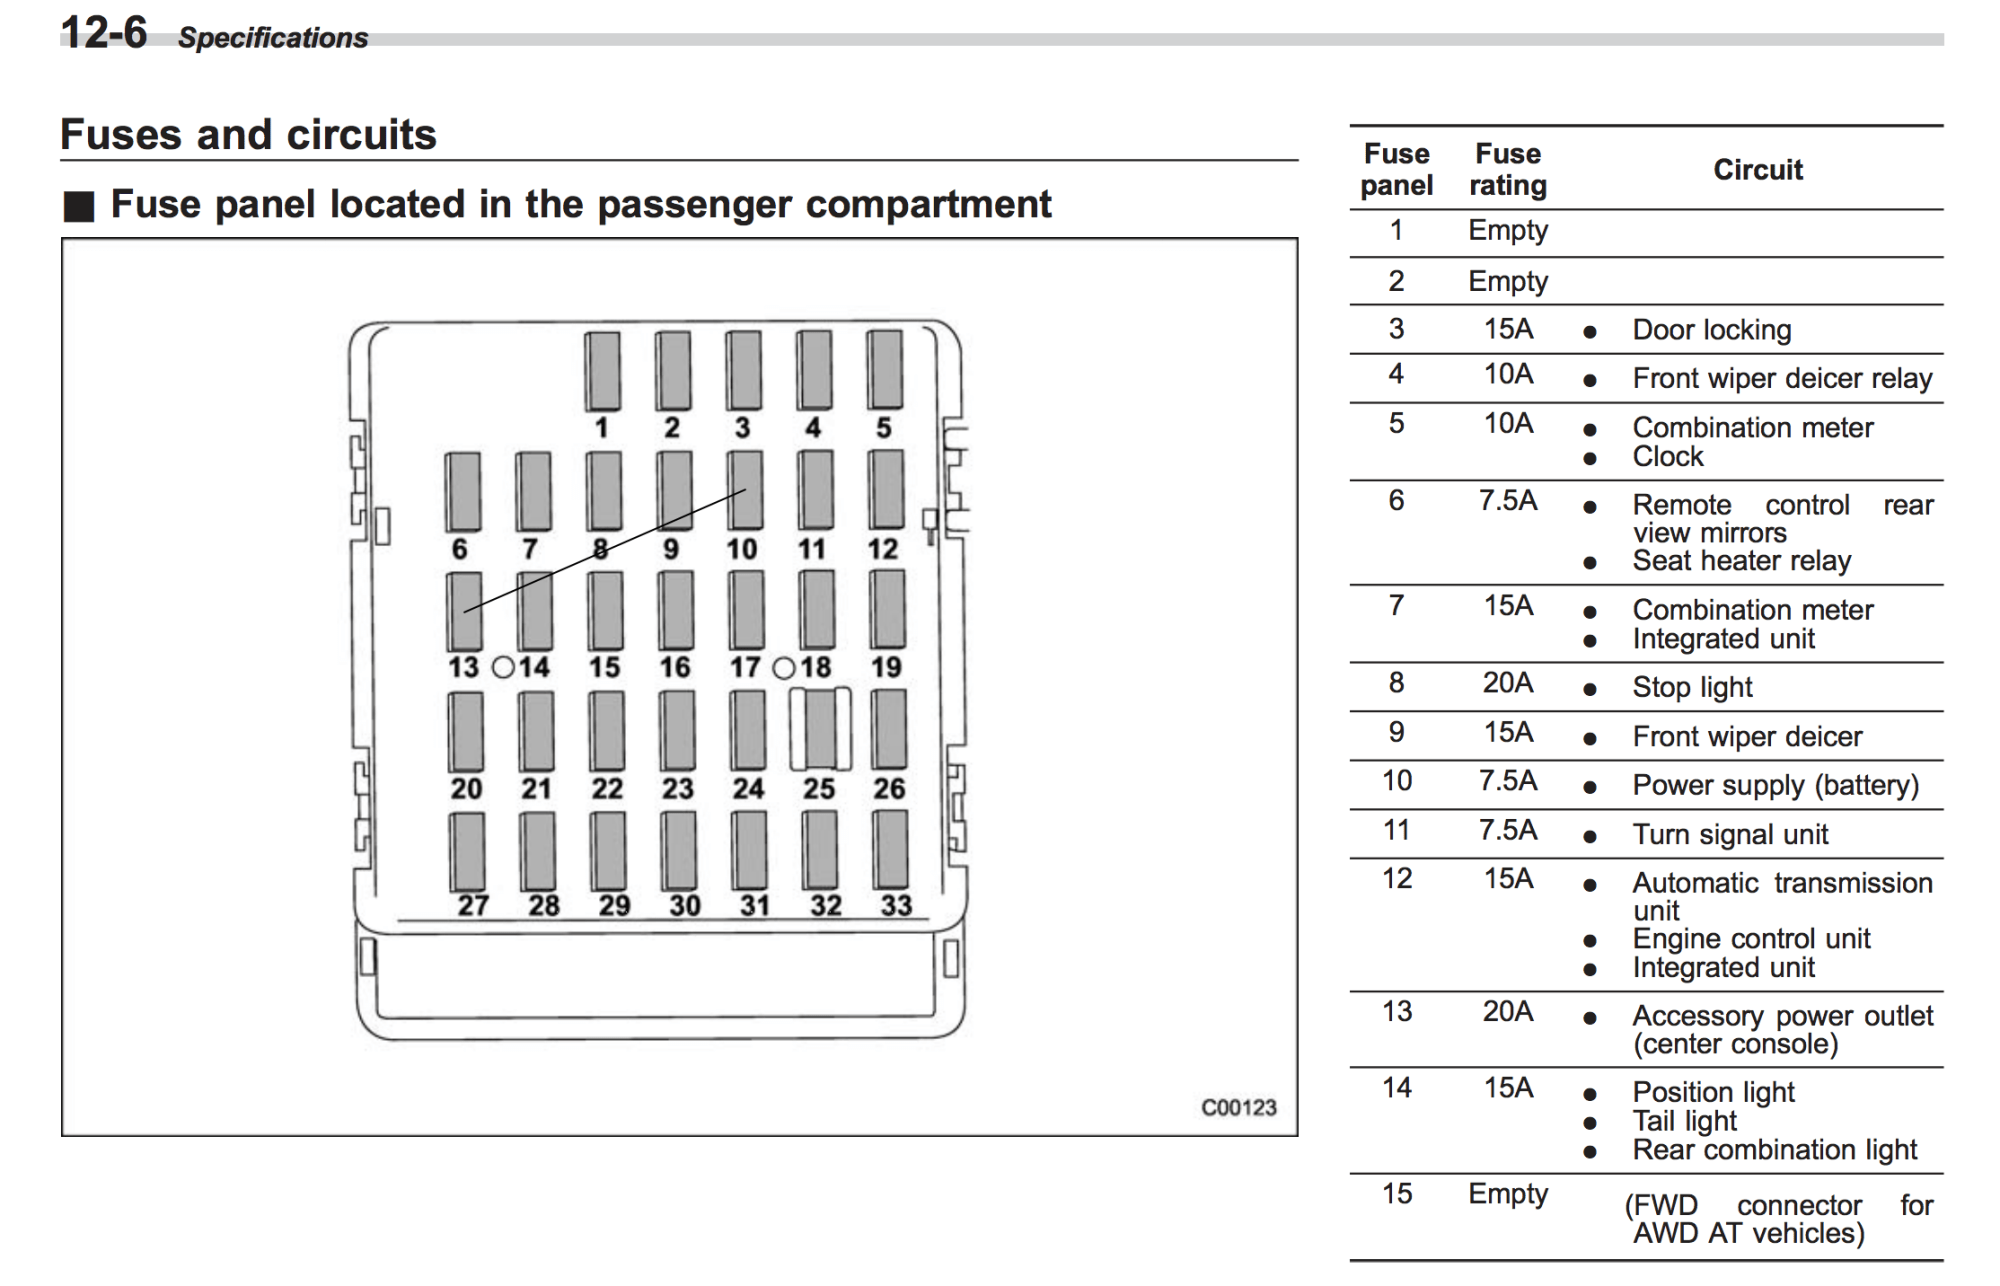 hight resolution of 1995 impreza fuse box schematics wiring diagrams u2022 rh parntesis co 2010 subaru impreza 2008 subaru